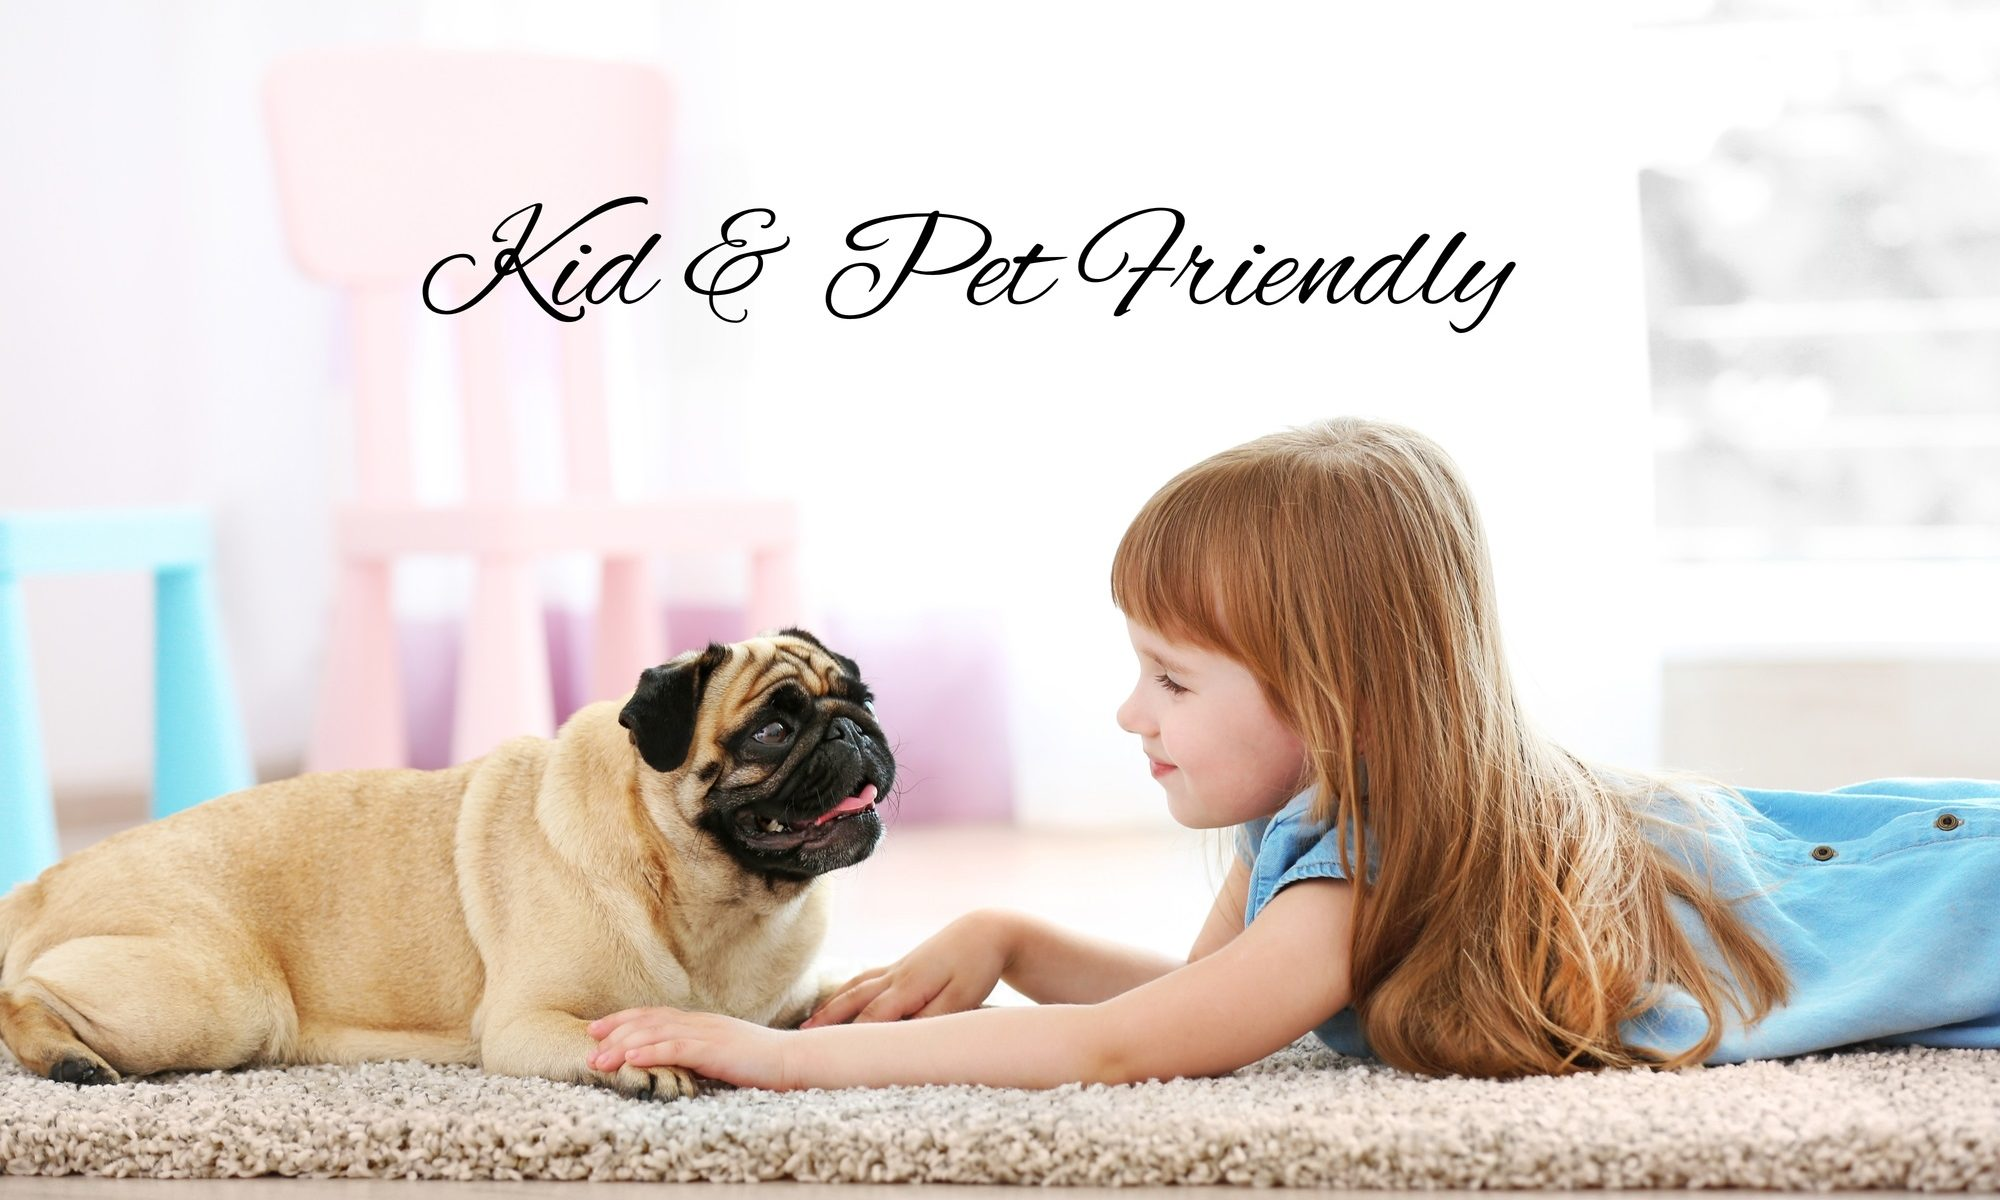 Our Services are Kid & Pet Friendly